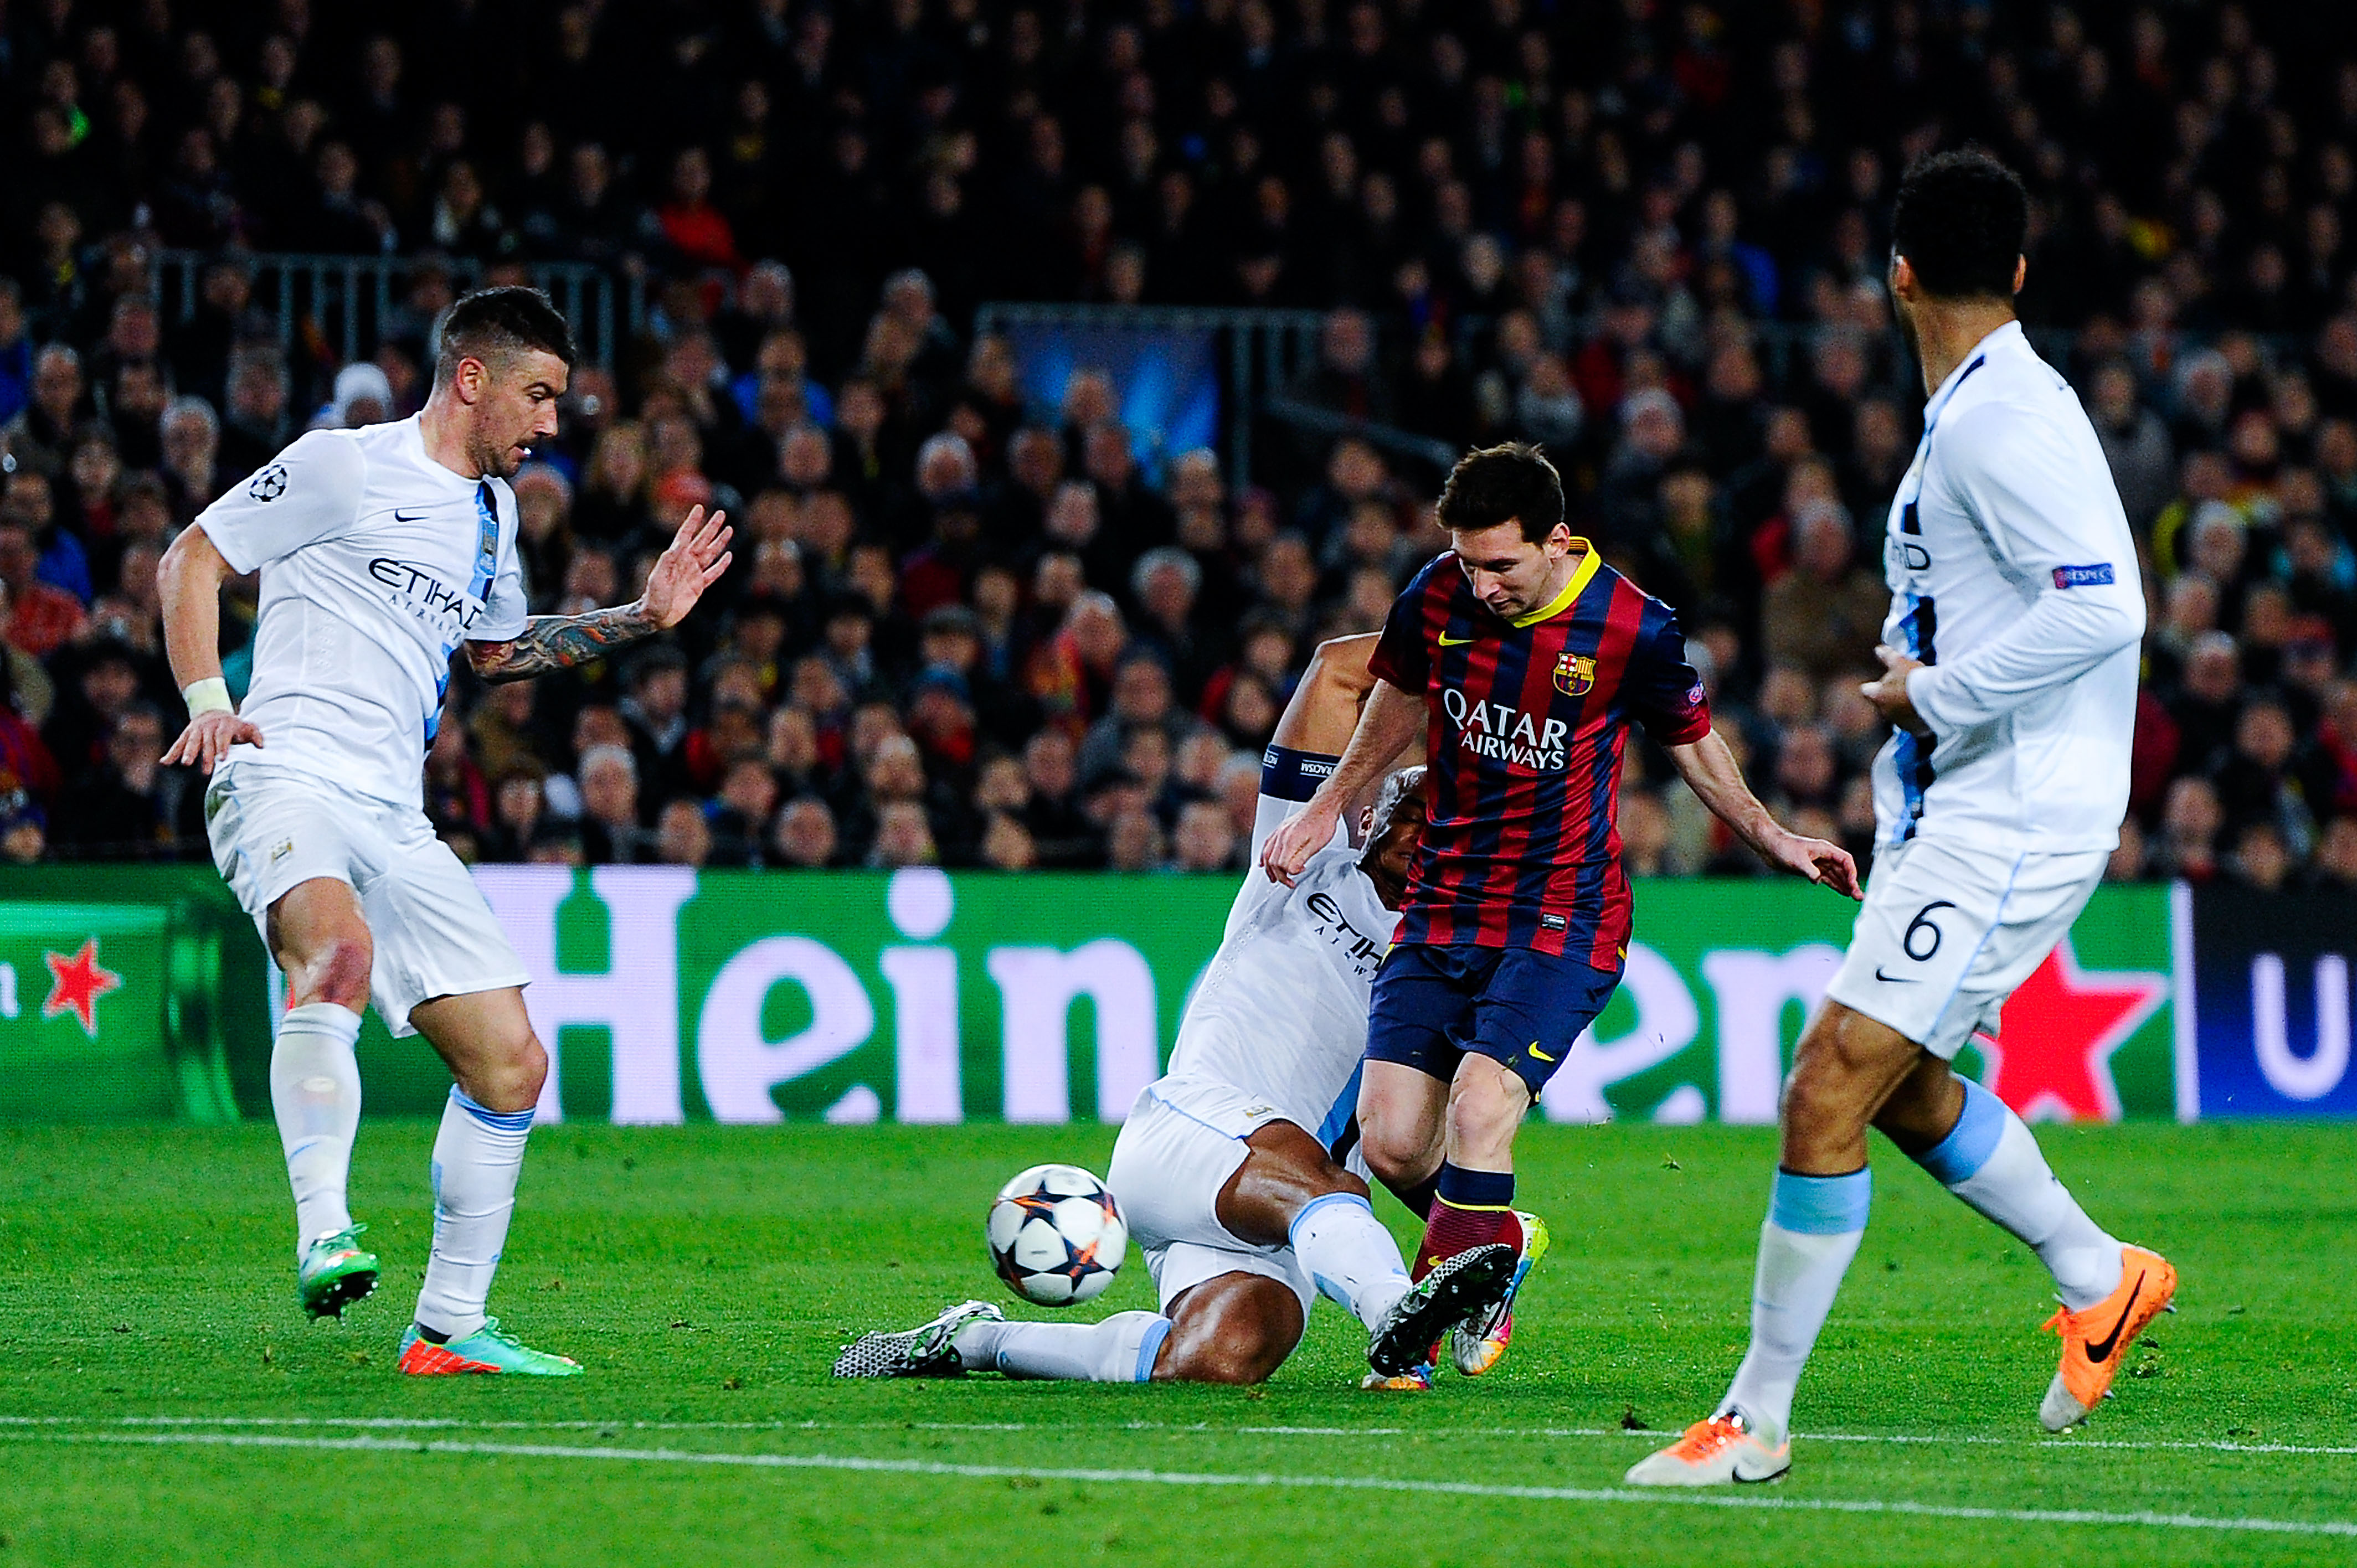 Lionel Messi of FC Barcelona duels for the ball with Vincent Kompany of Manchester City FC during to the UEFA Champions League Round of 16 second leg match between FC Barcelona and Manchester City at Camp Nou on March 12, 2014 in Barcelona, Spain.